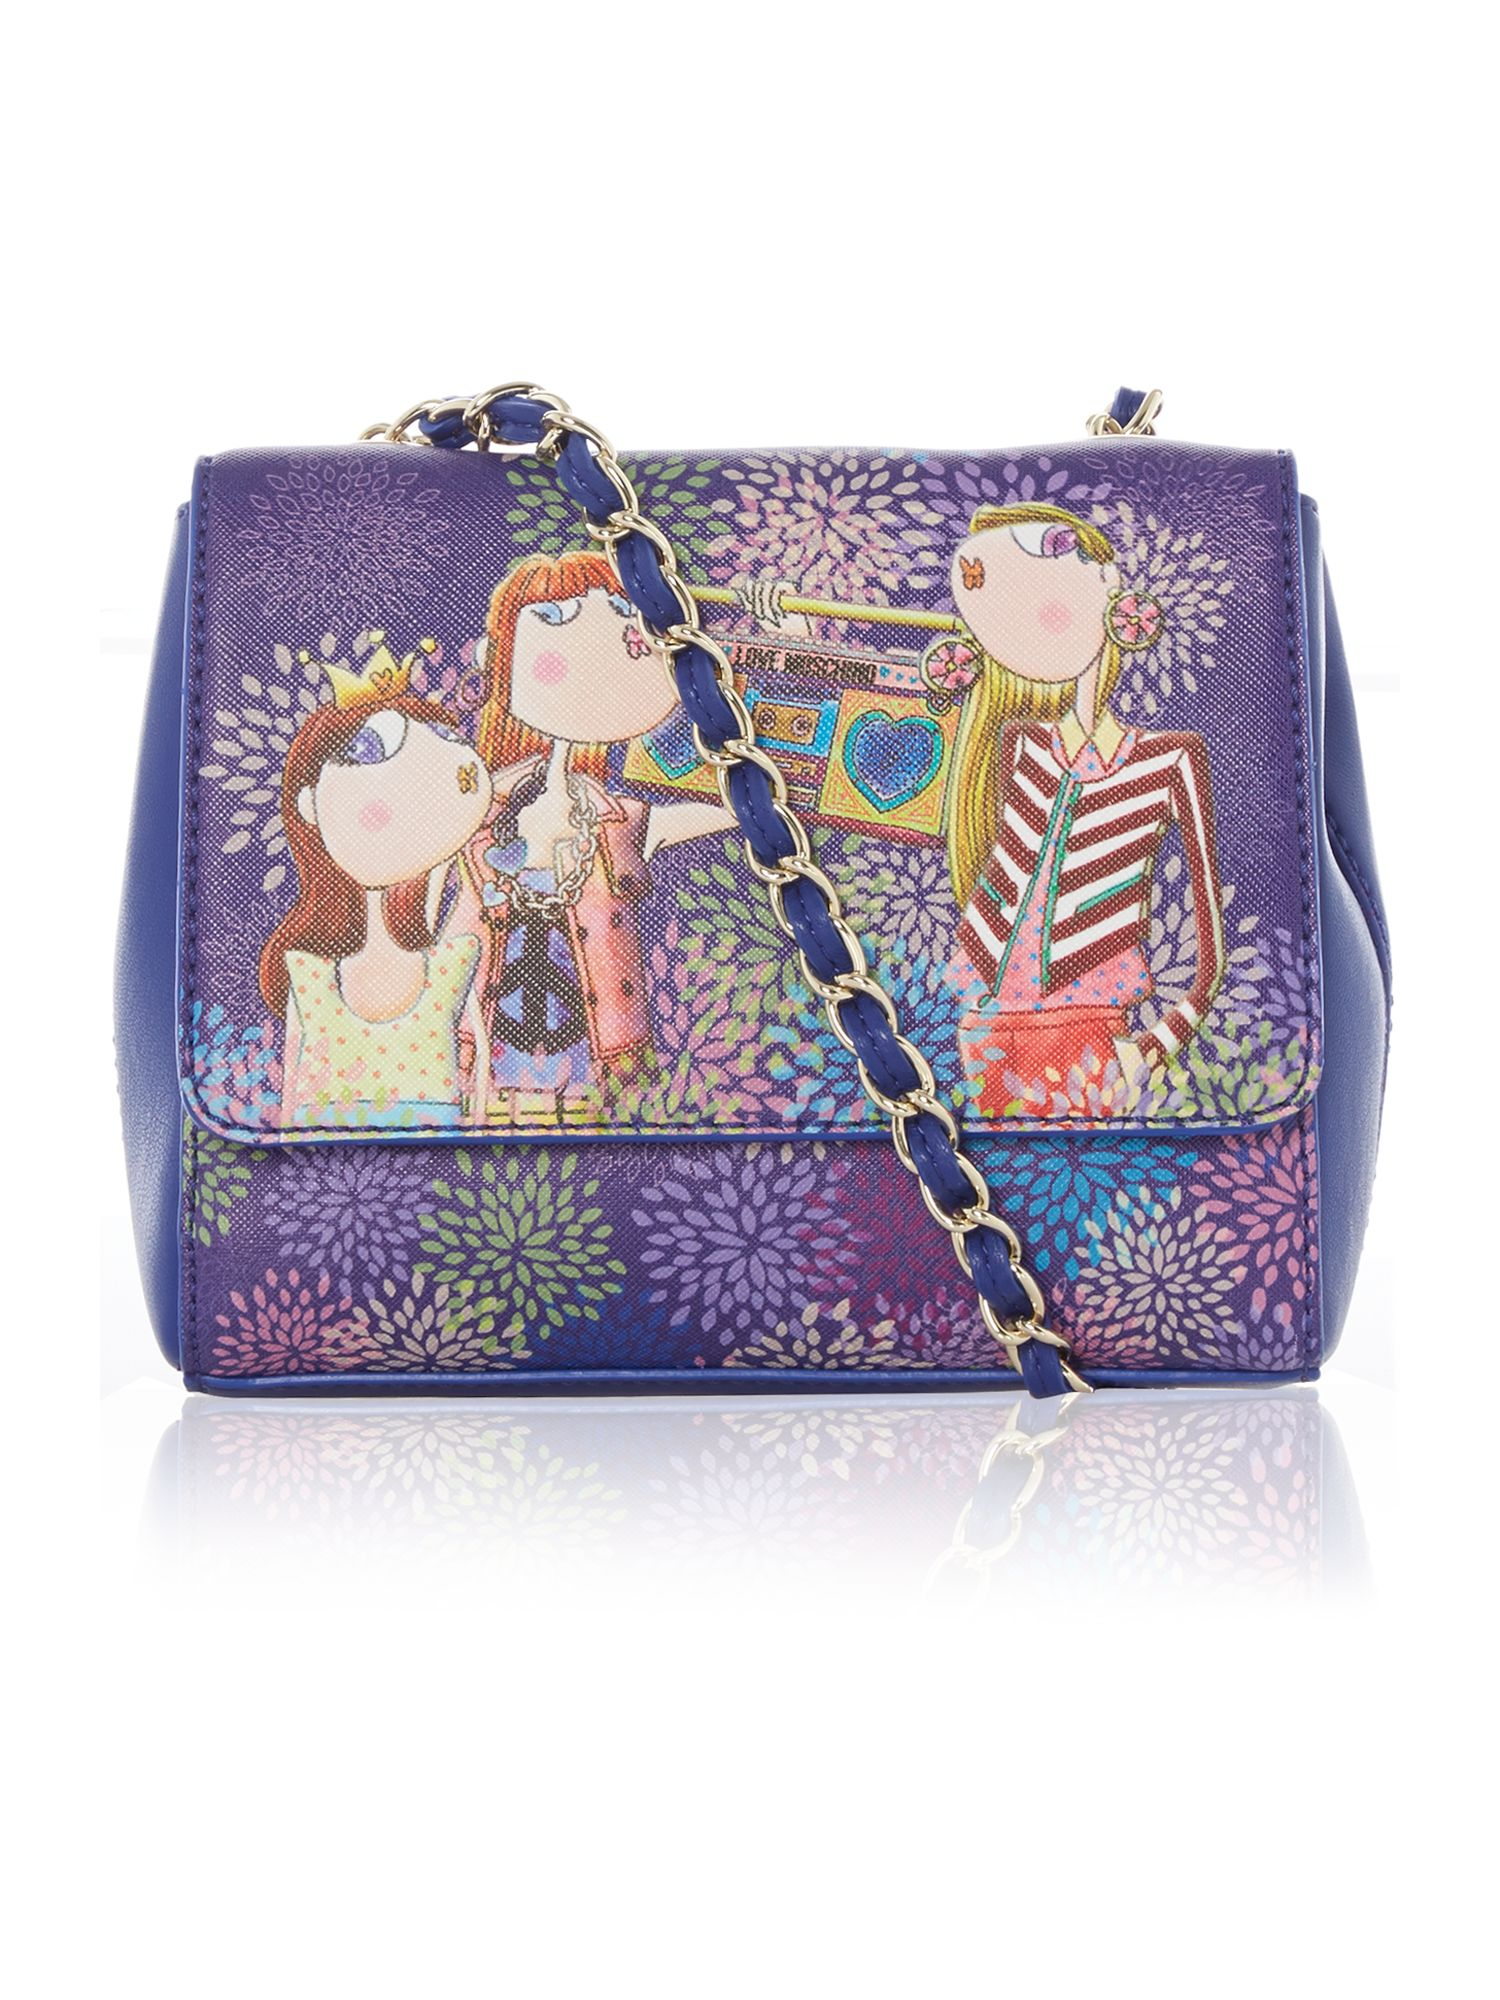 Blue mini charming cross body bag